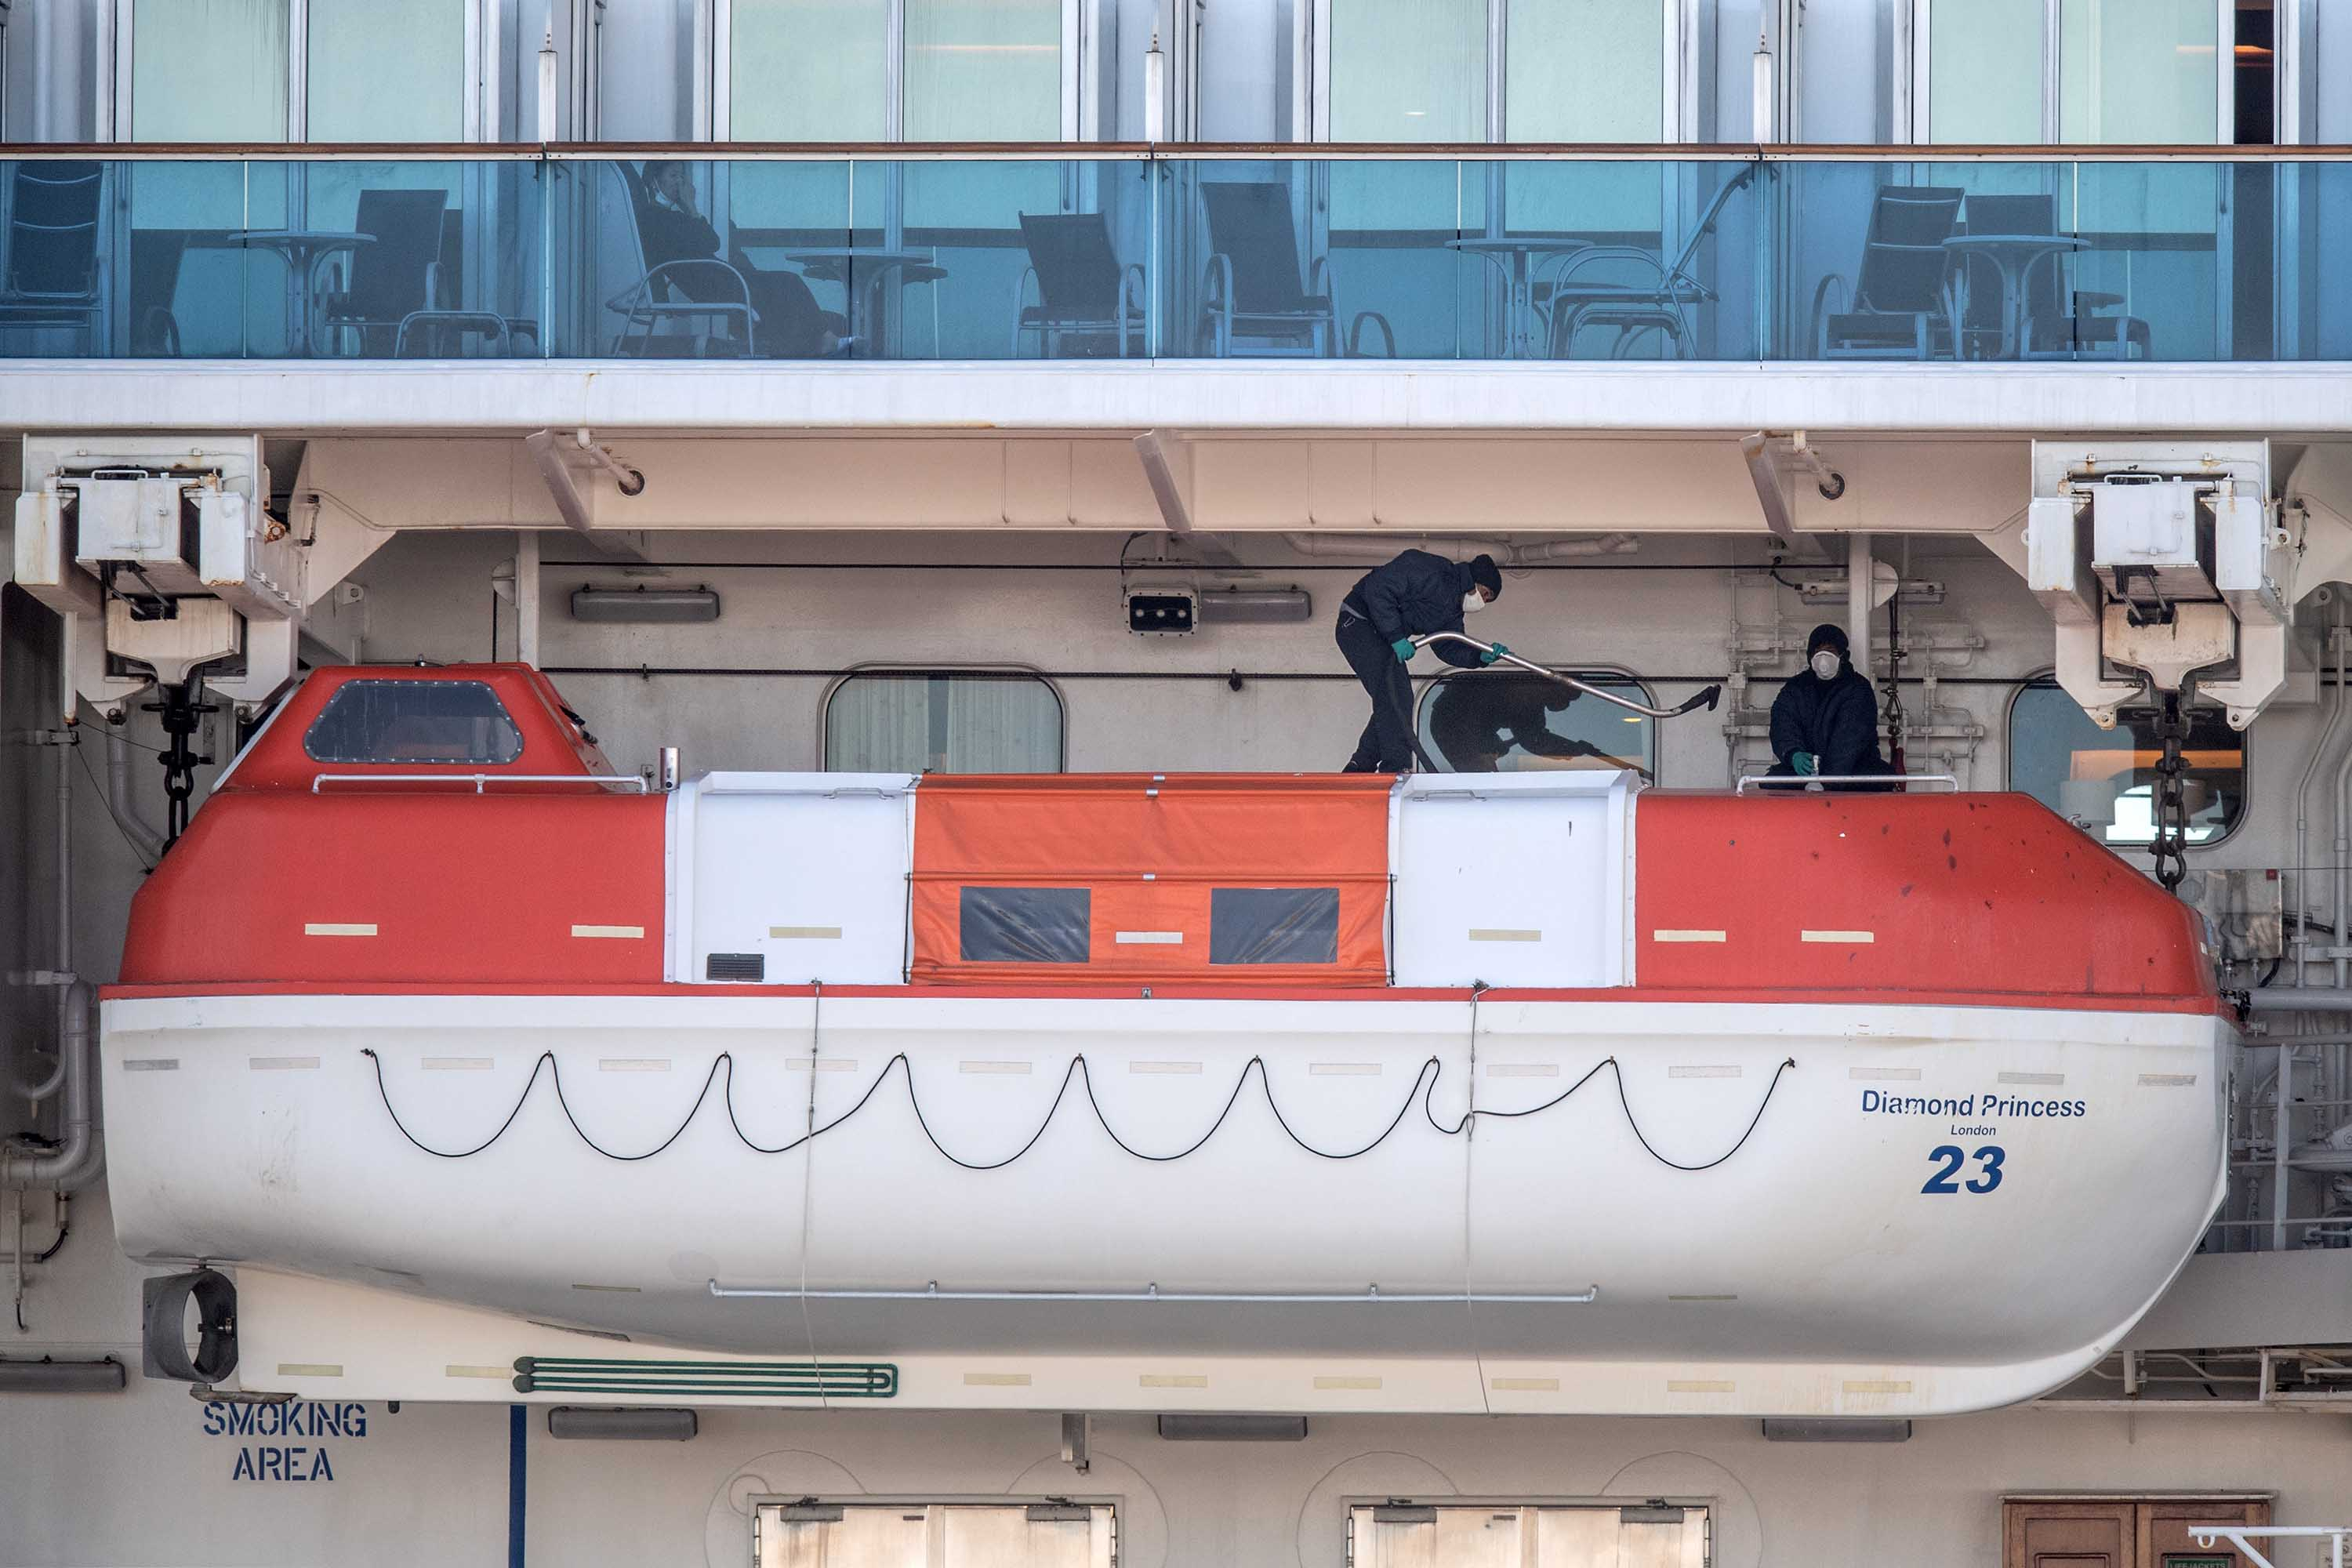 Crew members carry out maintenance on the Diamond Princess cruise ship docked in Yokohama, Japan on February 11.